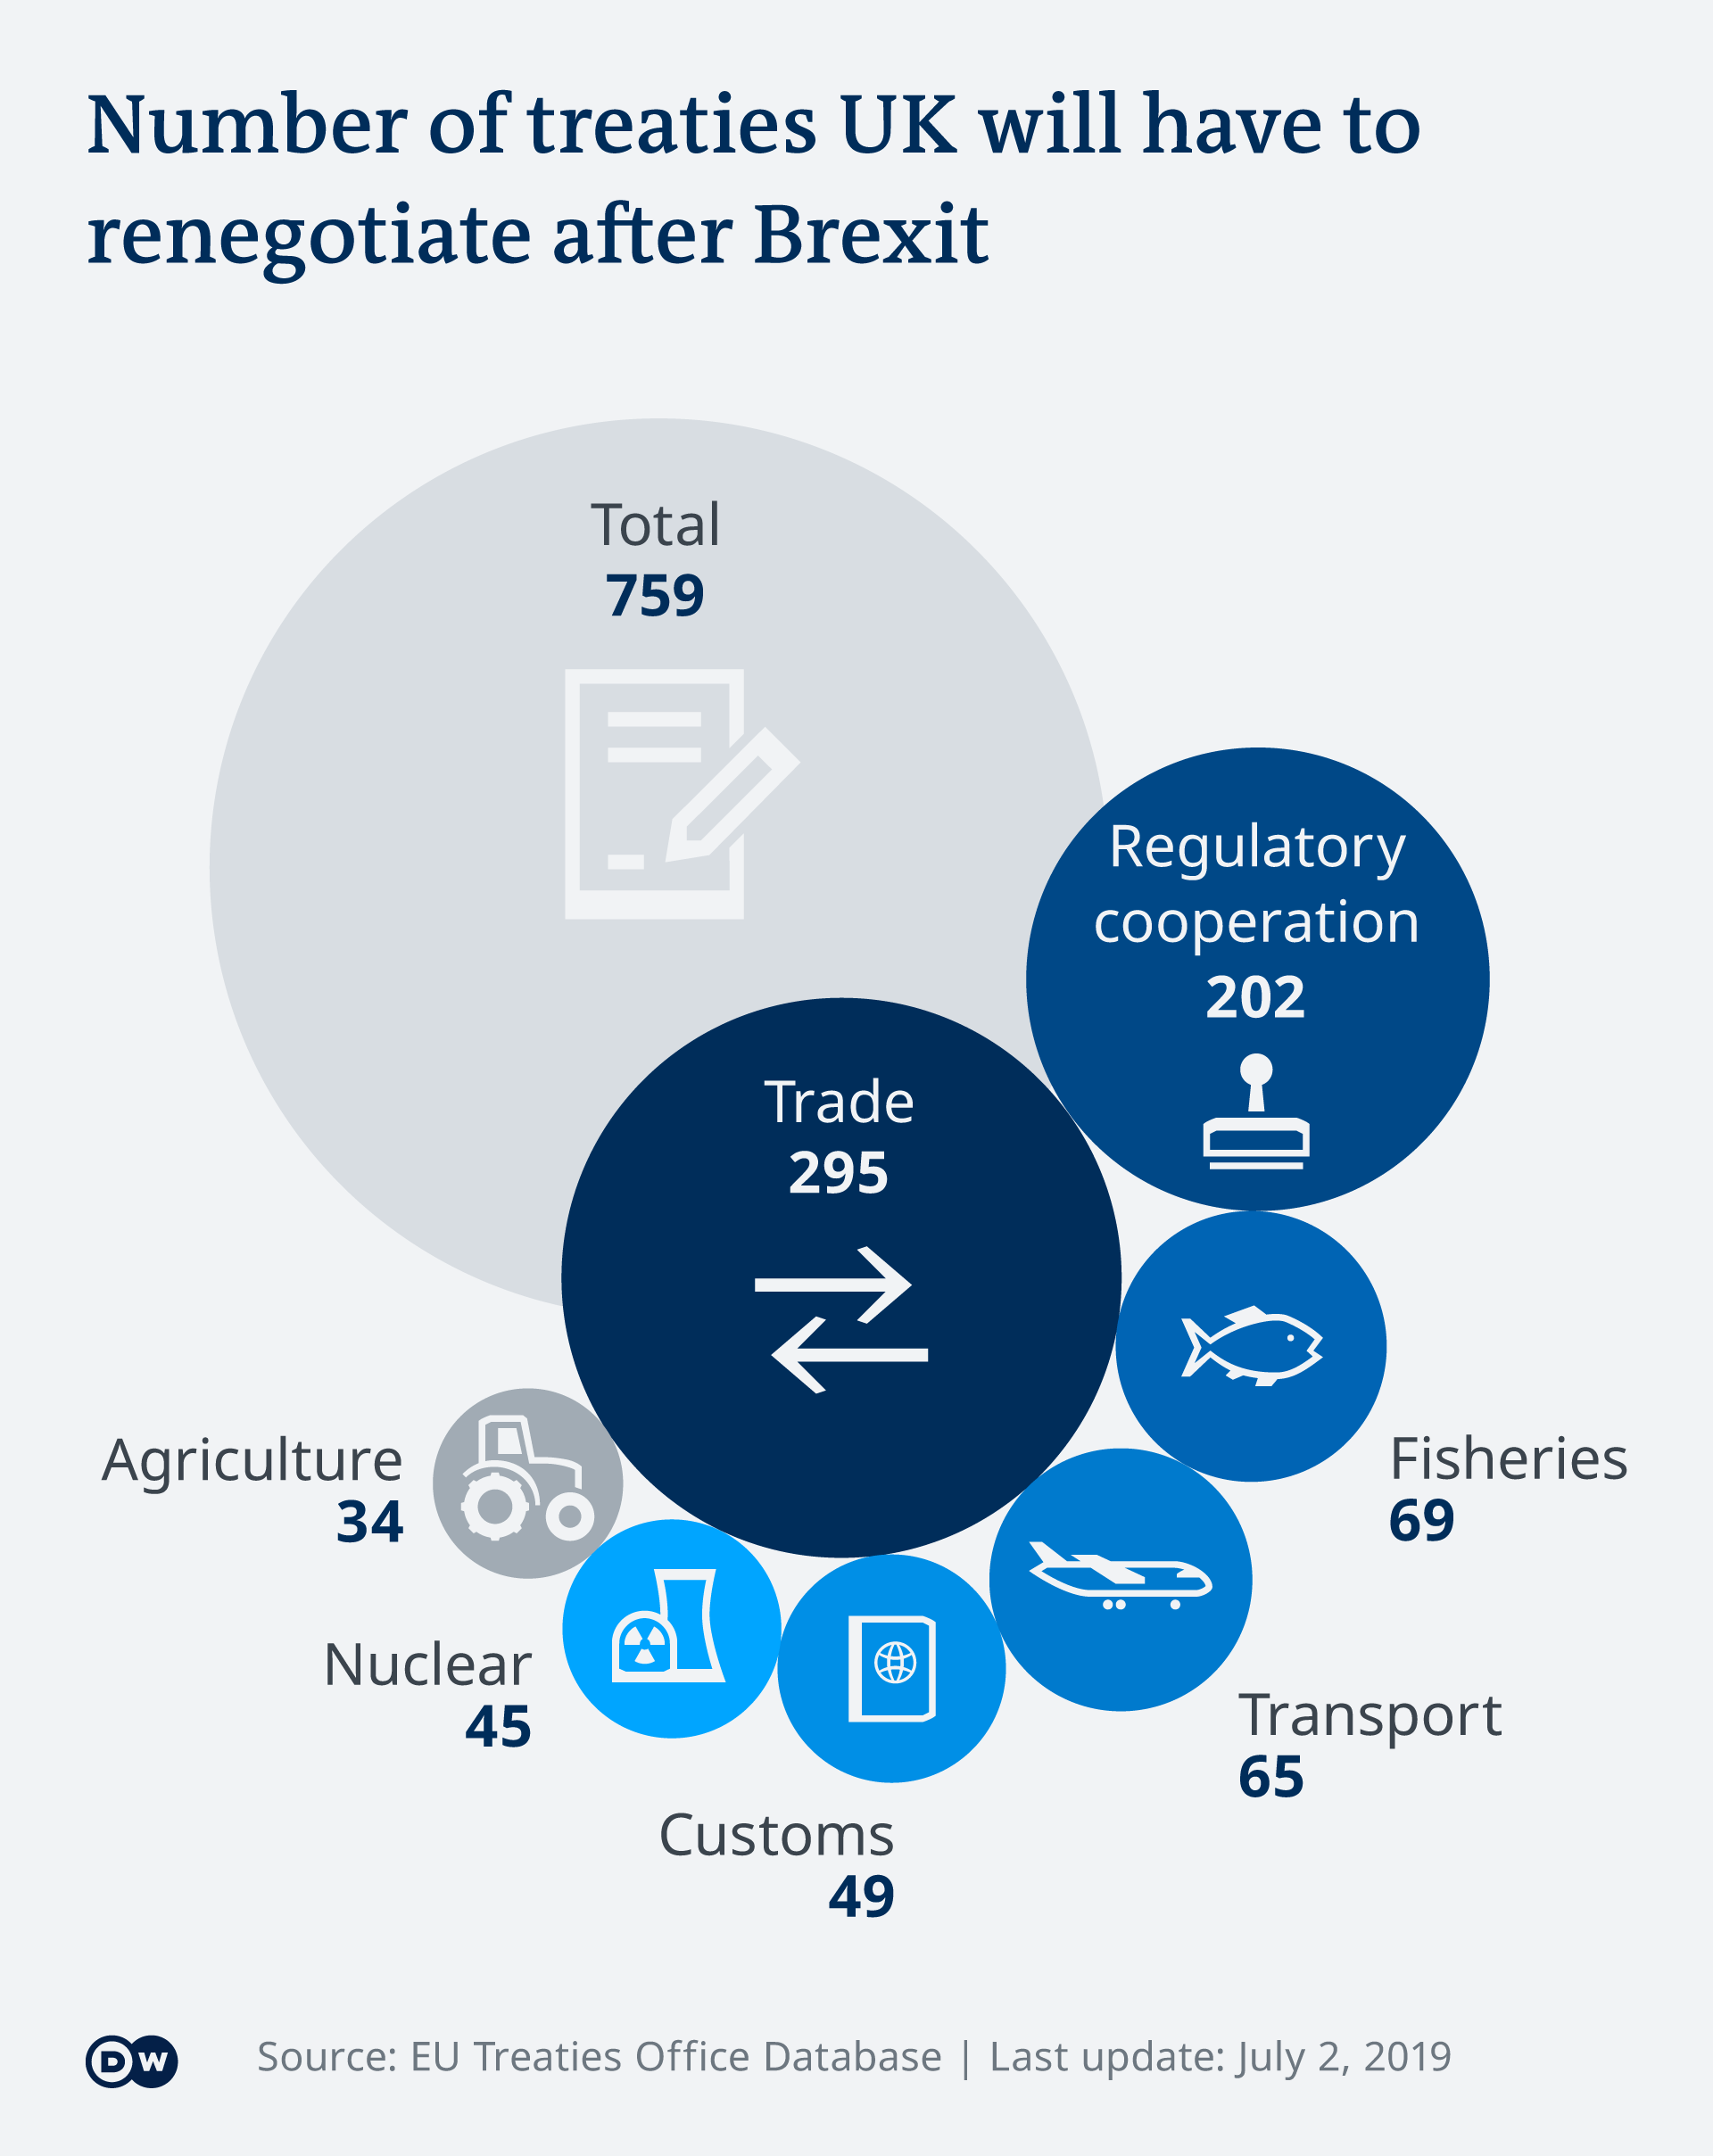 Number of treaties UK will have to renegotiate after Brexit